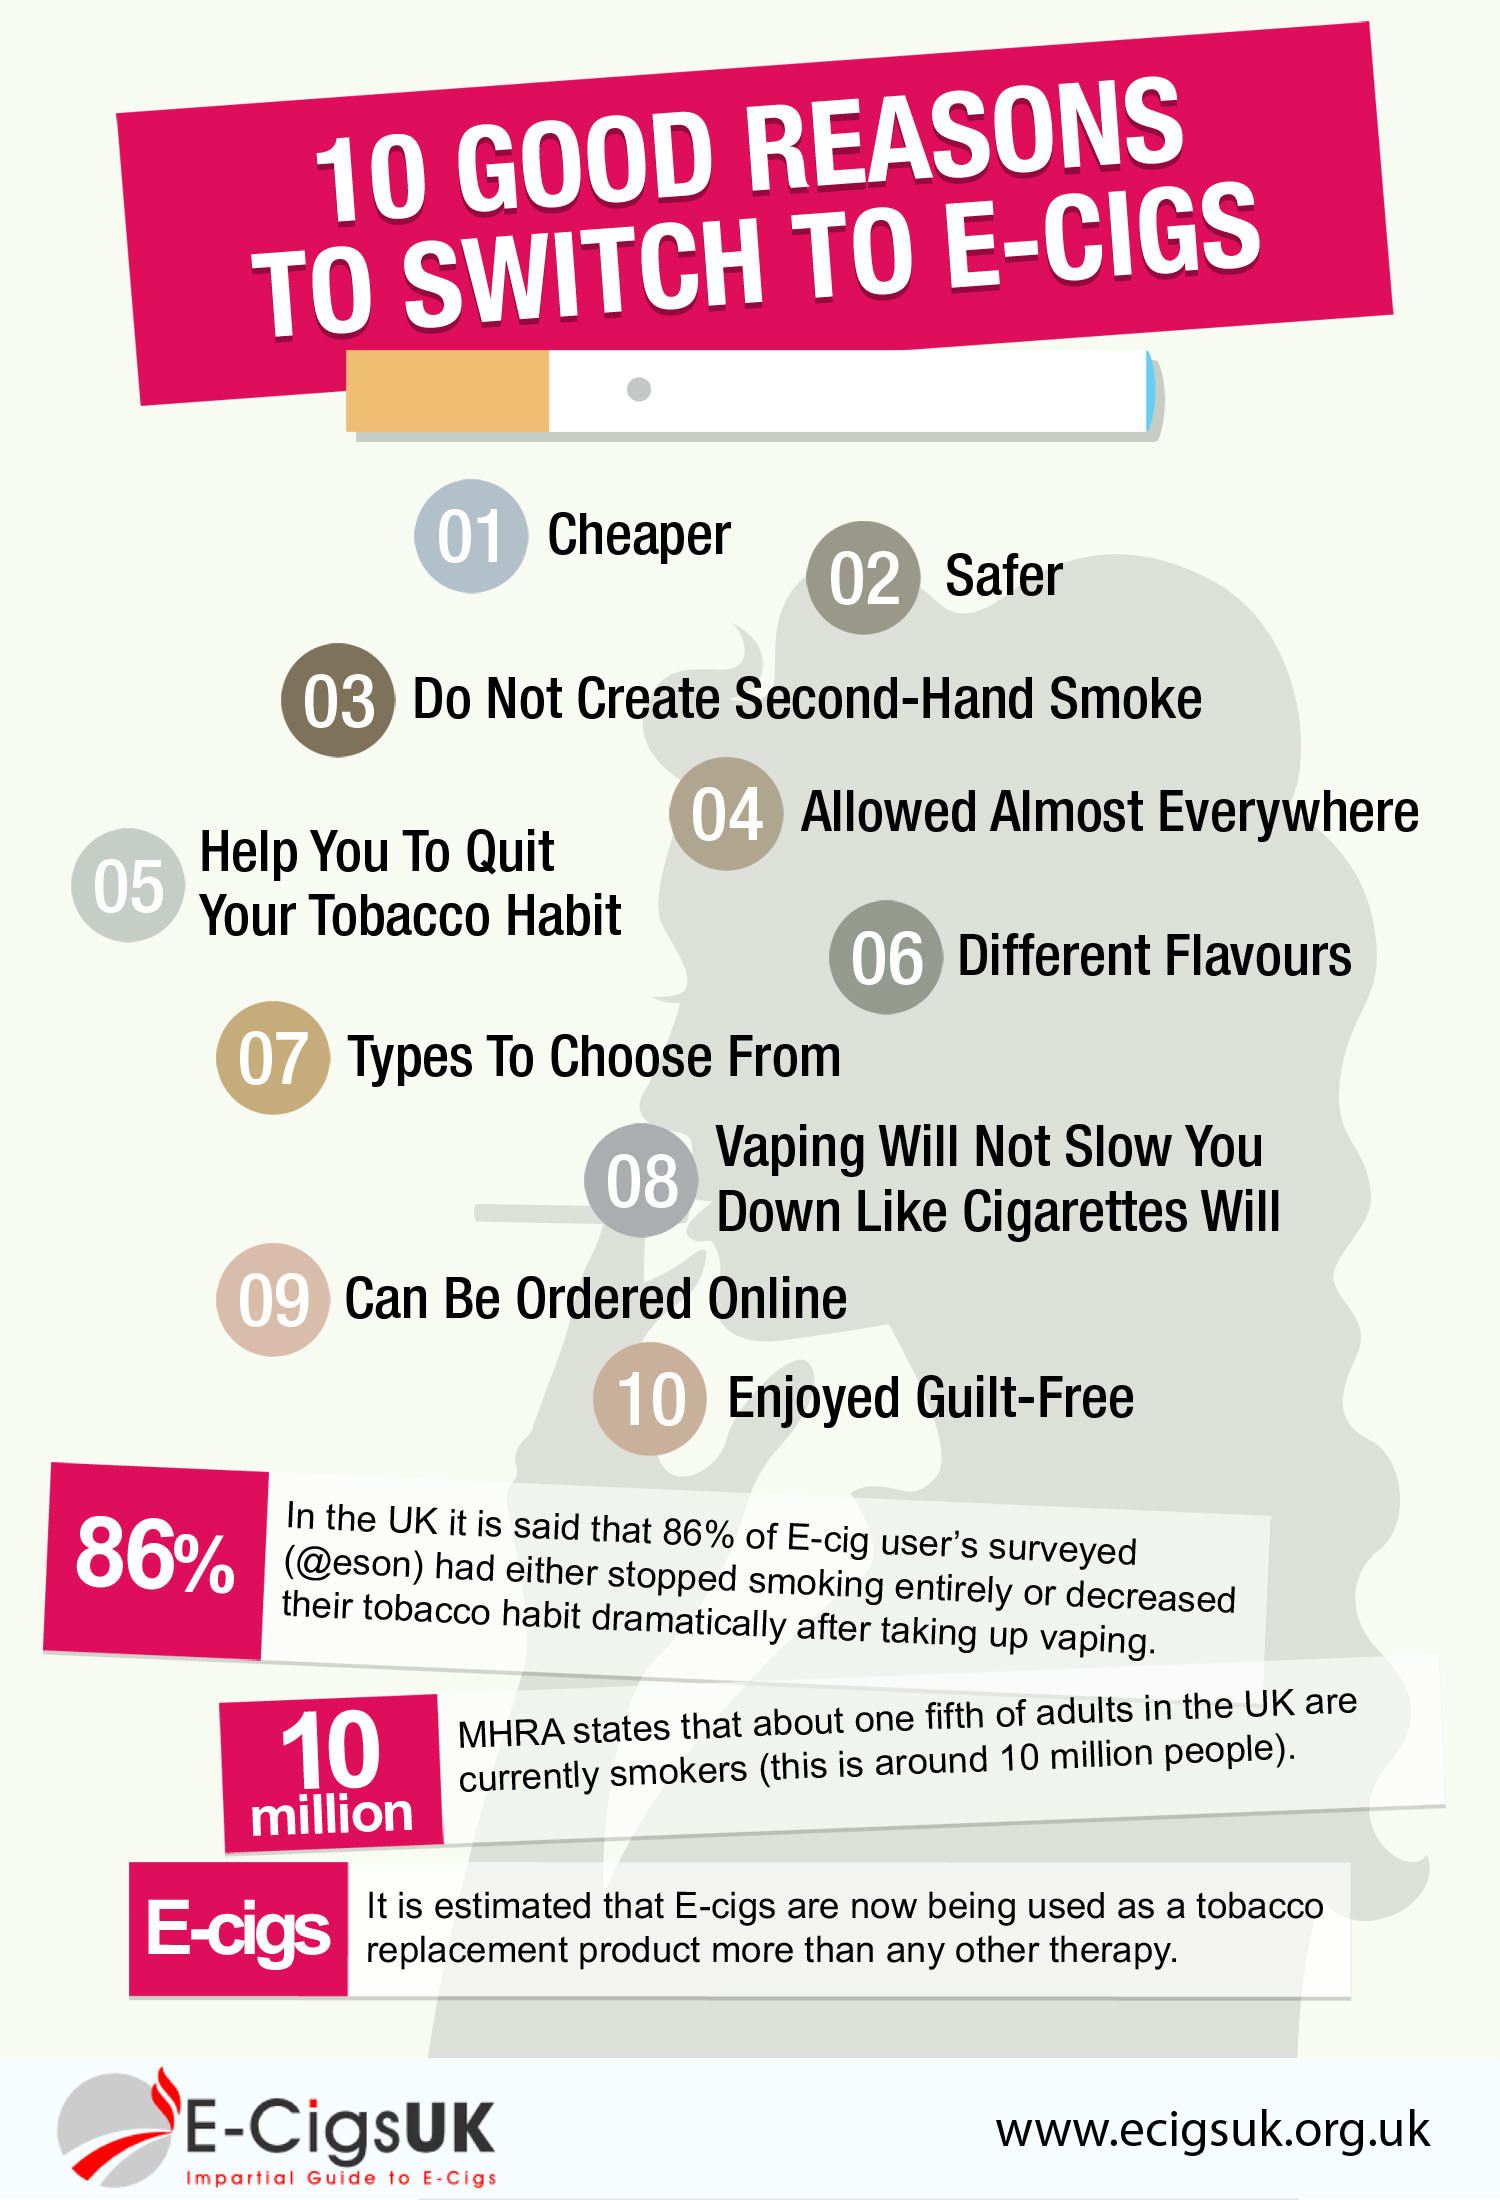 10 Good Reasons To Switch To E-Cigs Infographic